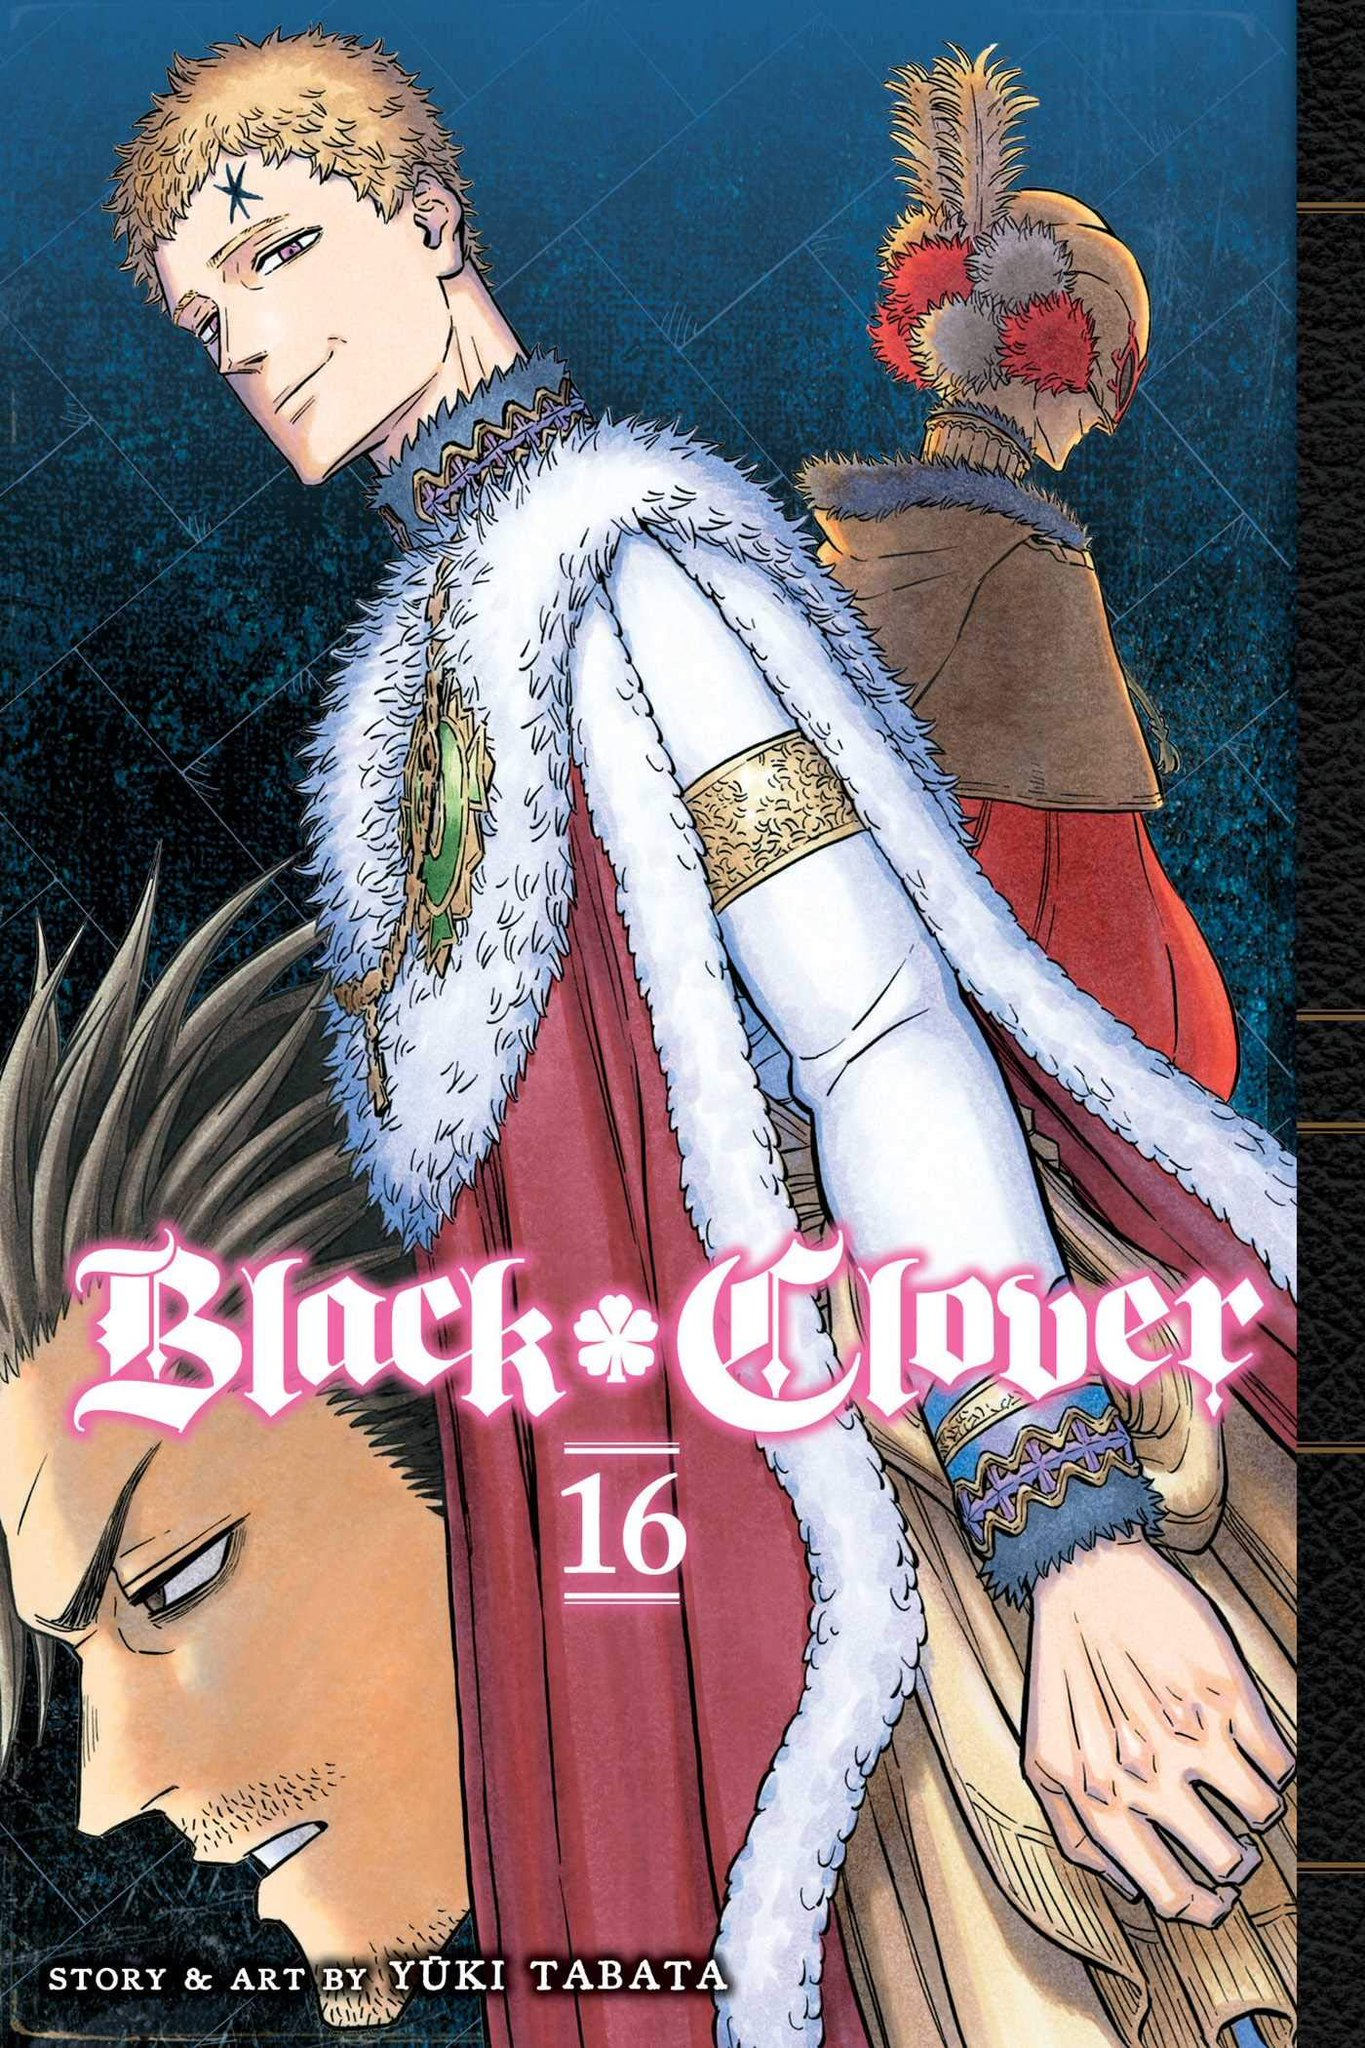 Blackclover Öラッククローバー On Twitter Upcoming Episode Titles Blackclover Episode 92 The Wizard King Vs The Leader Of The Eye Of The Midnight Sun Chapter 143 Episode 93 Julius He is also a former captain of the grey deer squad. upcoming episode titles blackclover